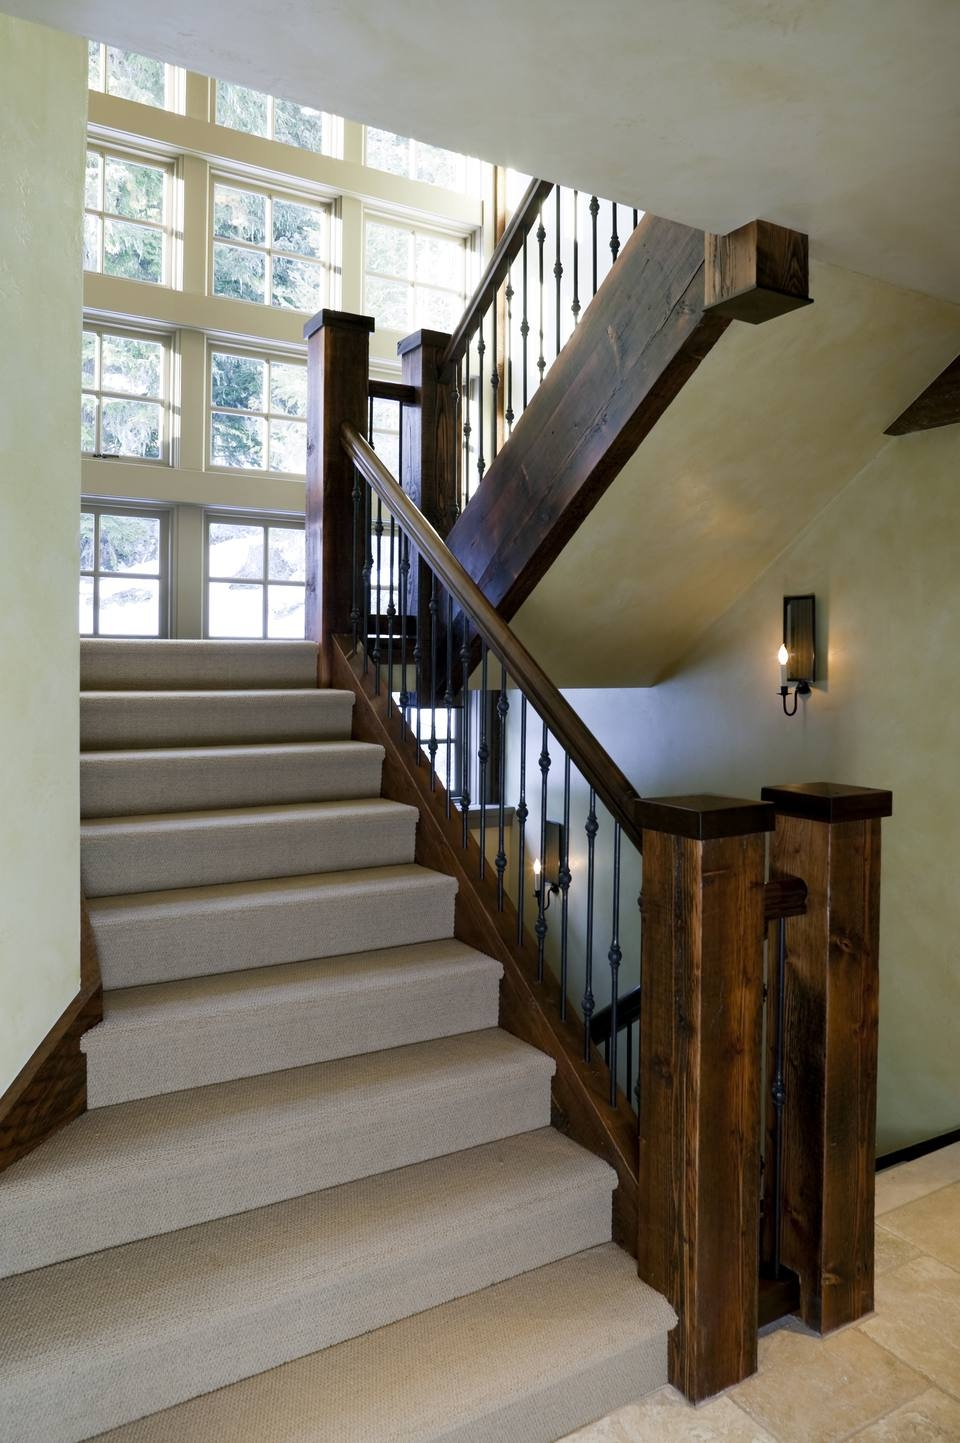 Patterned Carpet With Recessed Lighting   Twist Carpet For Stairs